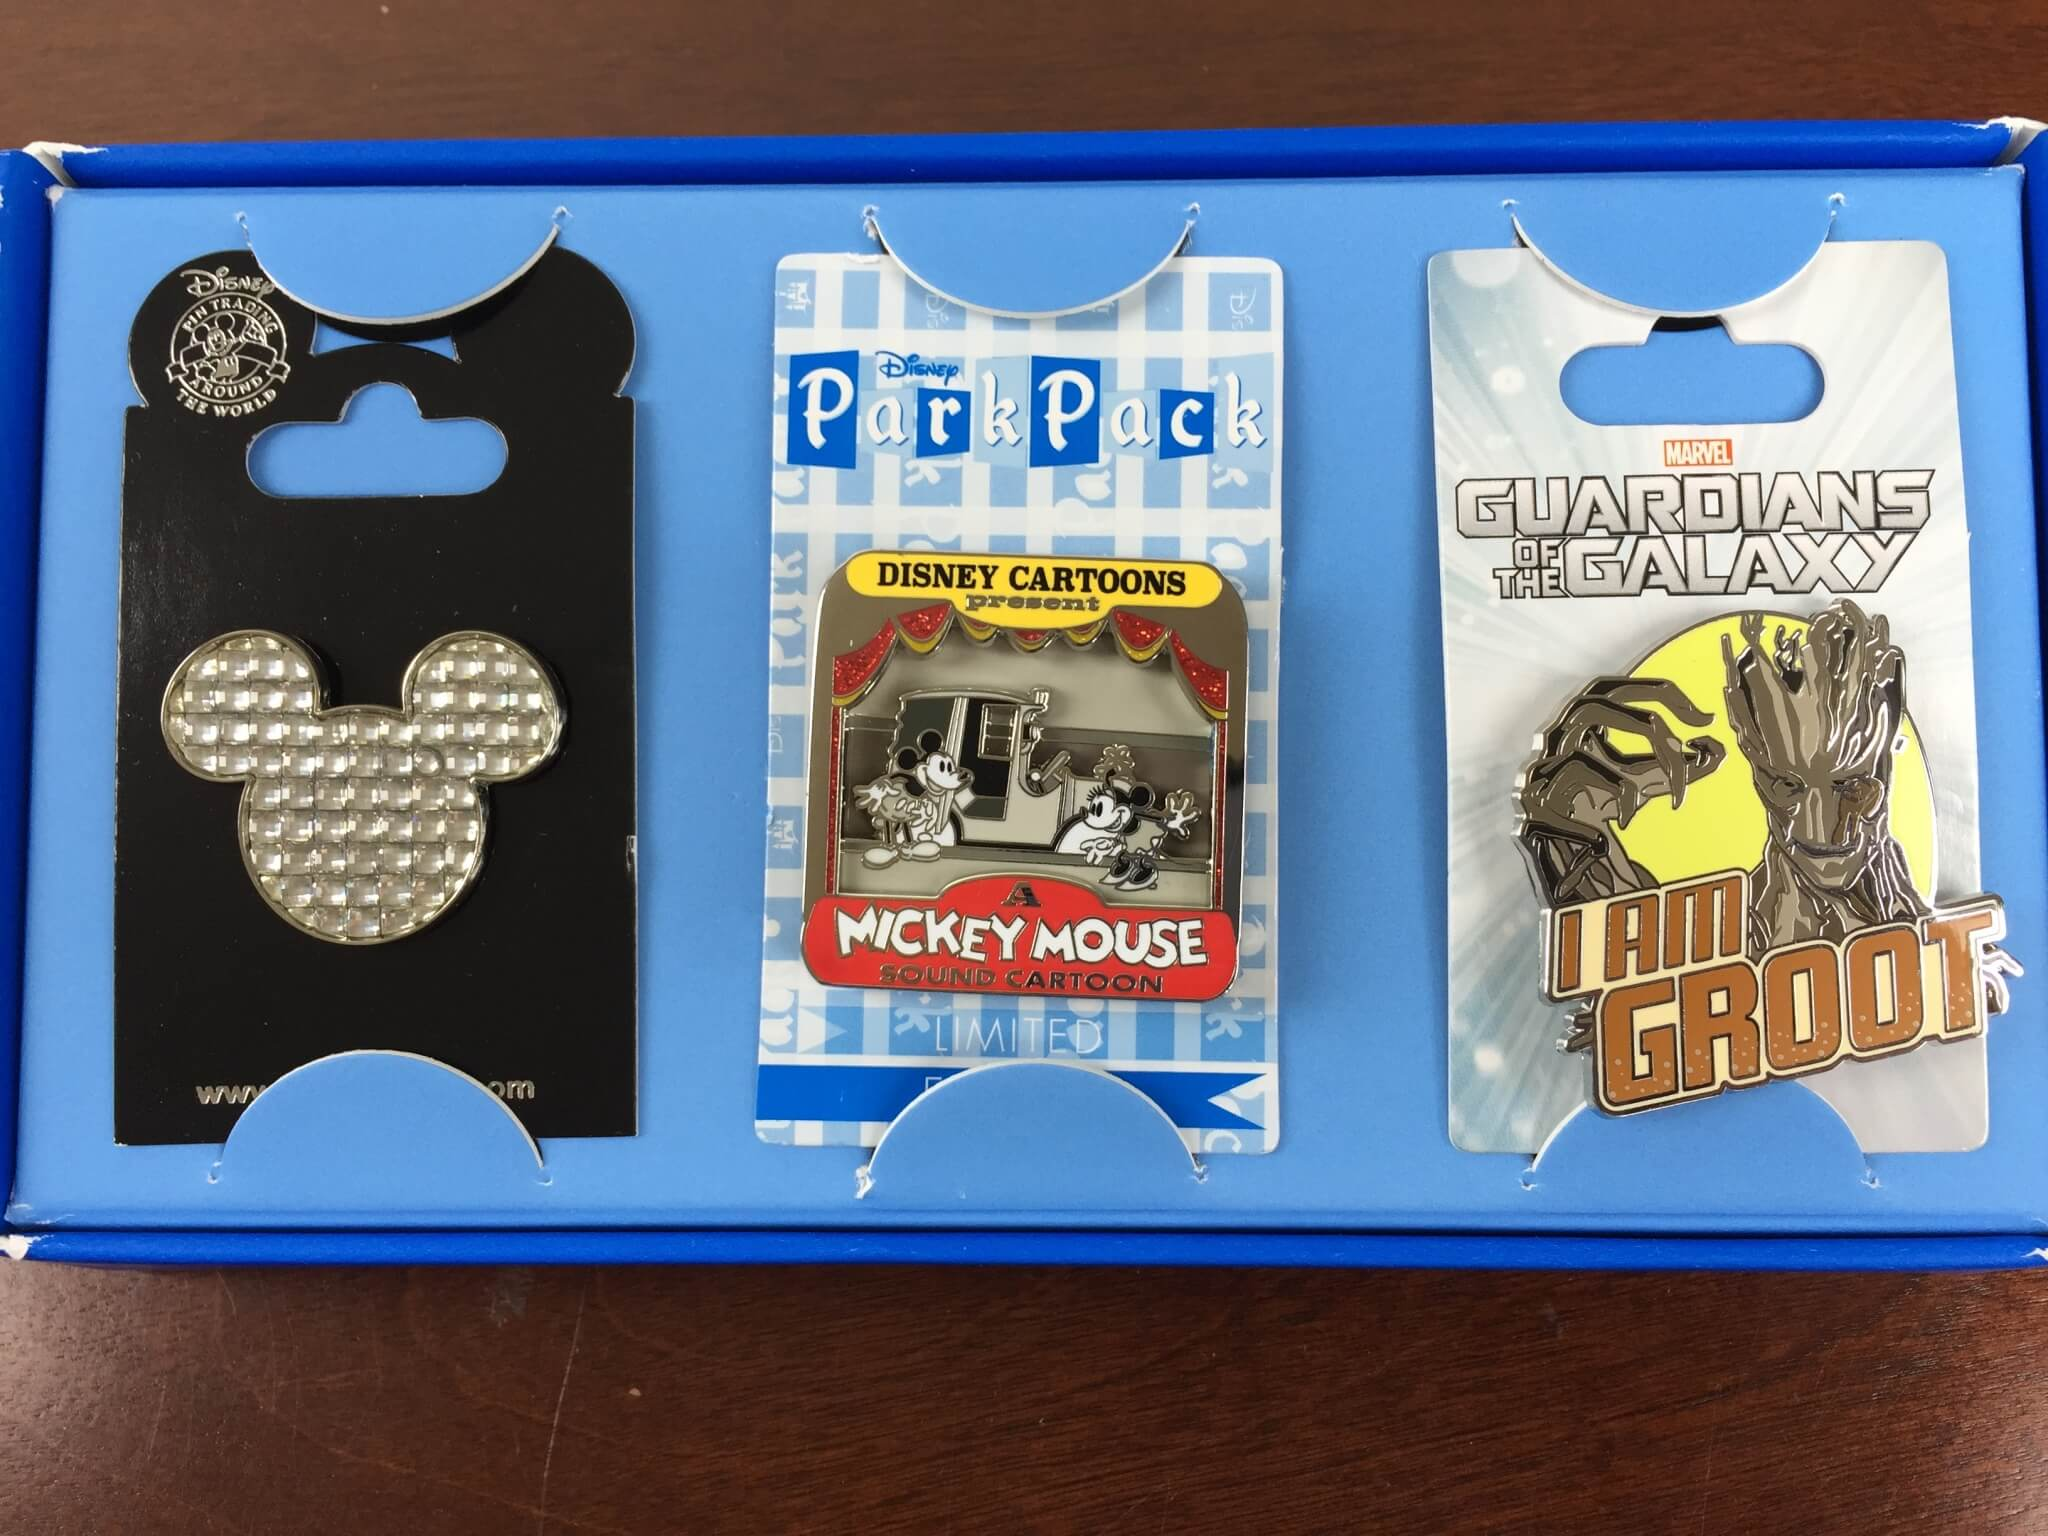 Disney Park Pack: Pin Trading Edition Review – July 2015